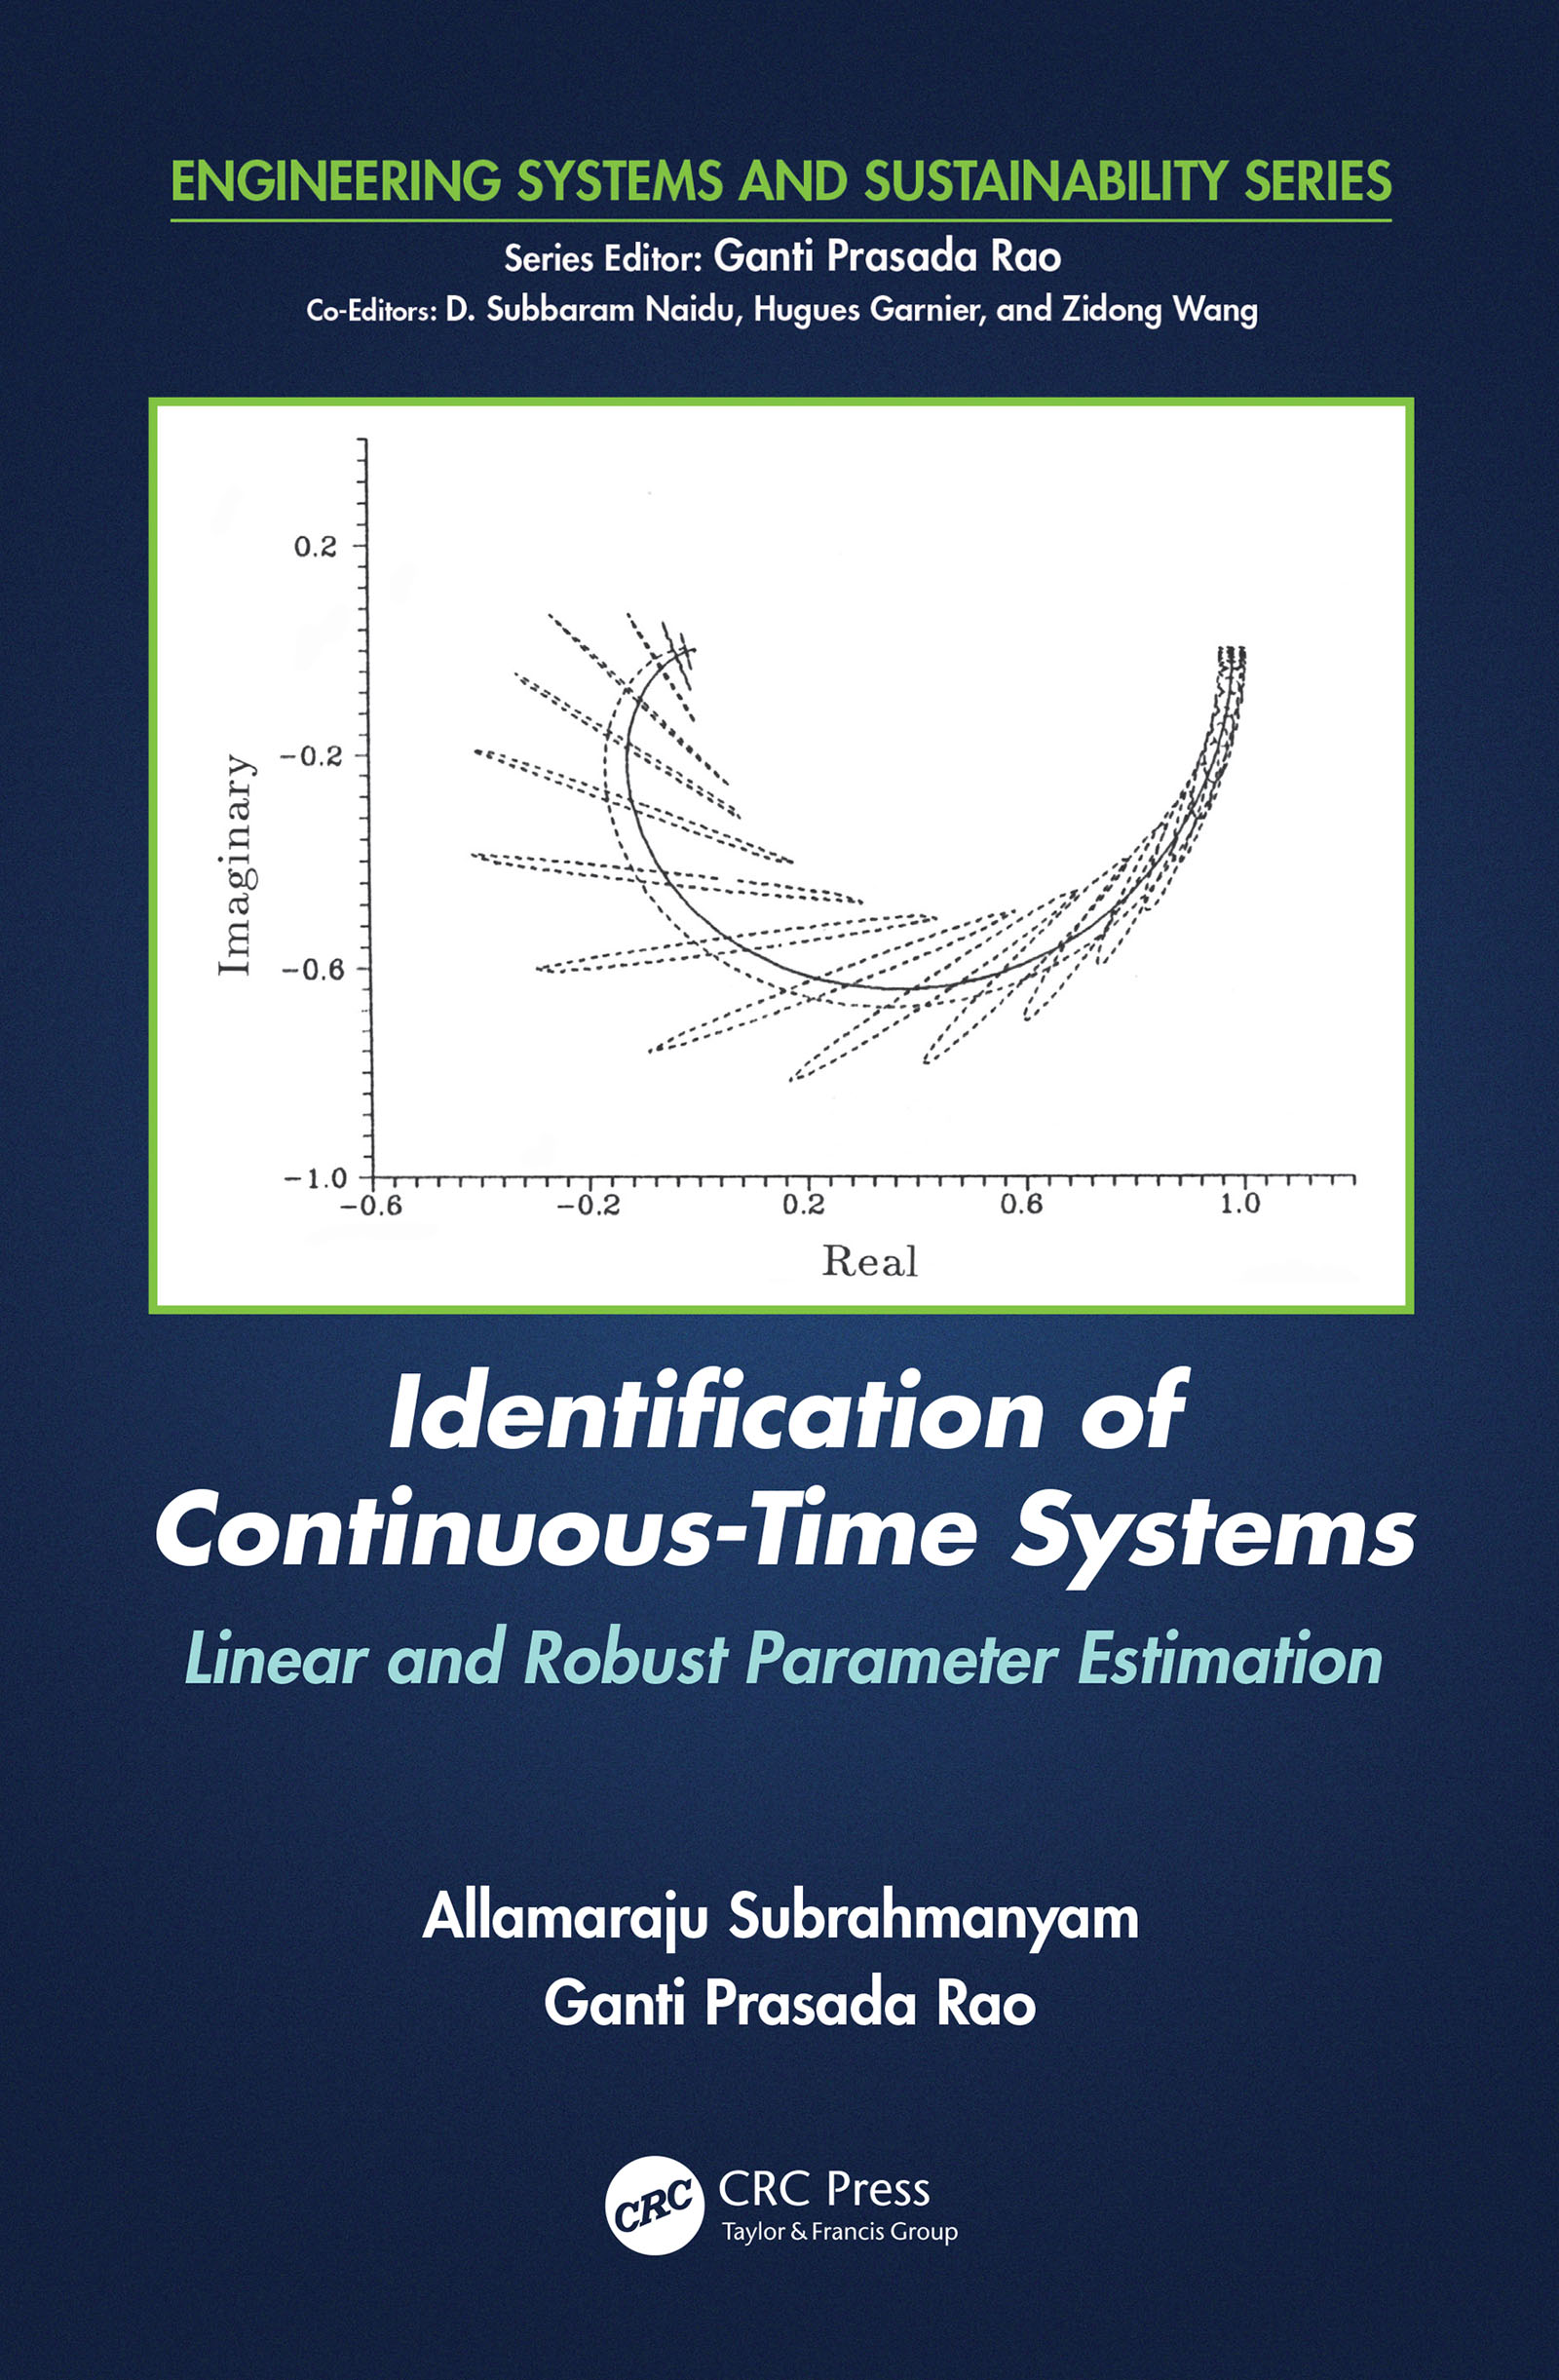 Identification of Continuous-Time Systems: Linear and Robust Parameter Estimation book cover